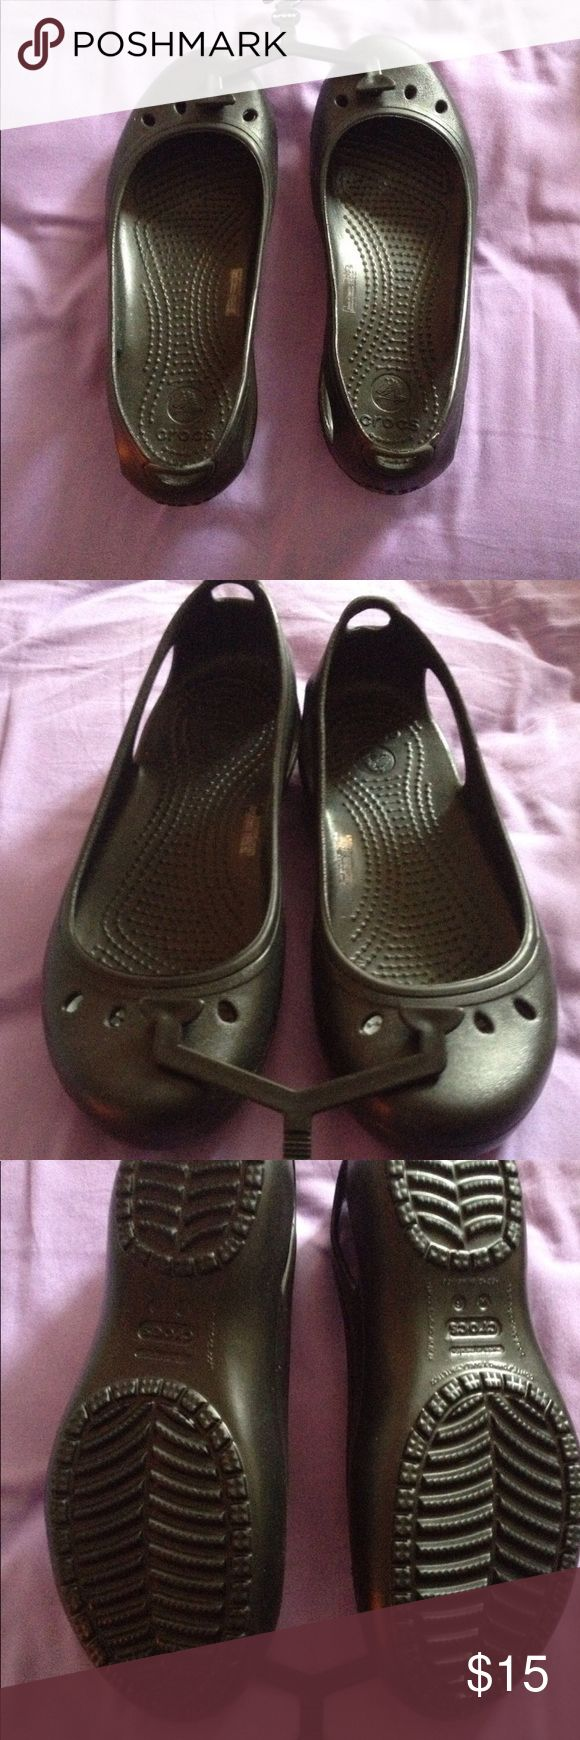 Crocs Brand new, never worn, size 6, black, very cute, croc slip on. Super comfy, and if you've never had a pair of crocs now is your chance to get a pair super cheap! CROCS Shoes Flats & Loafers